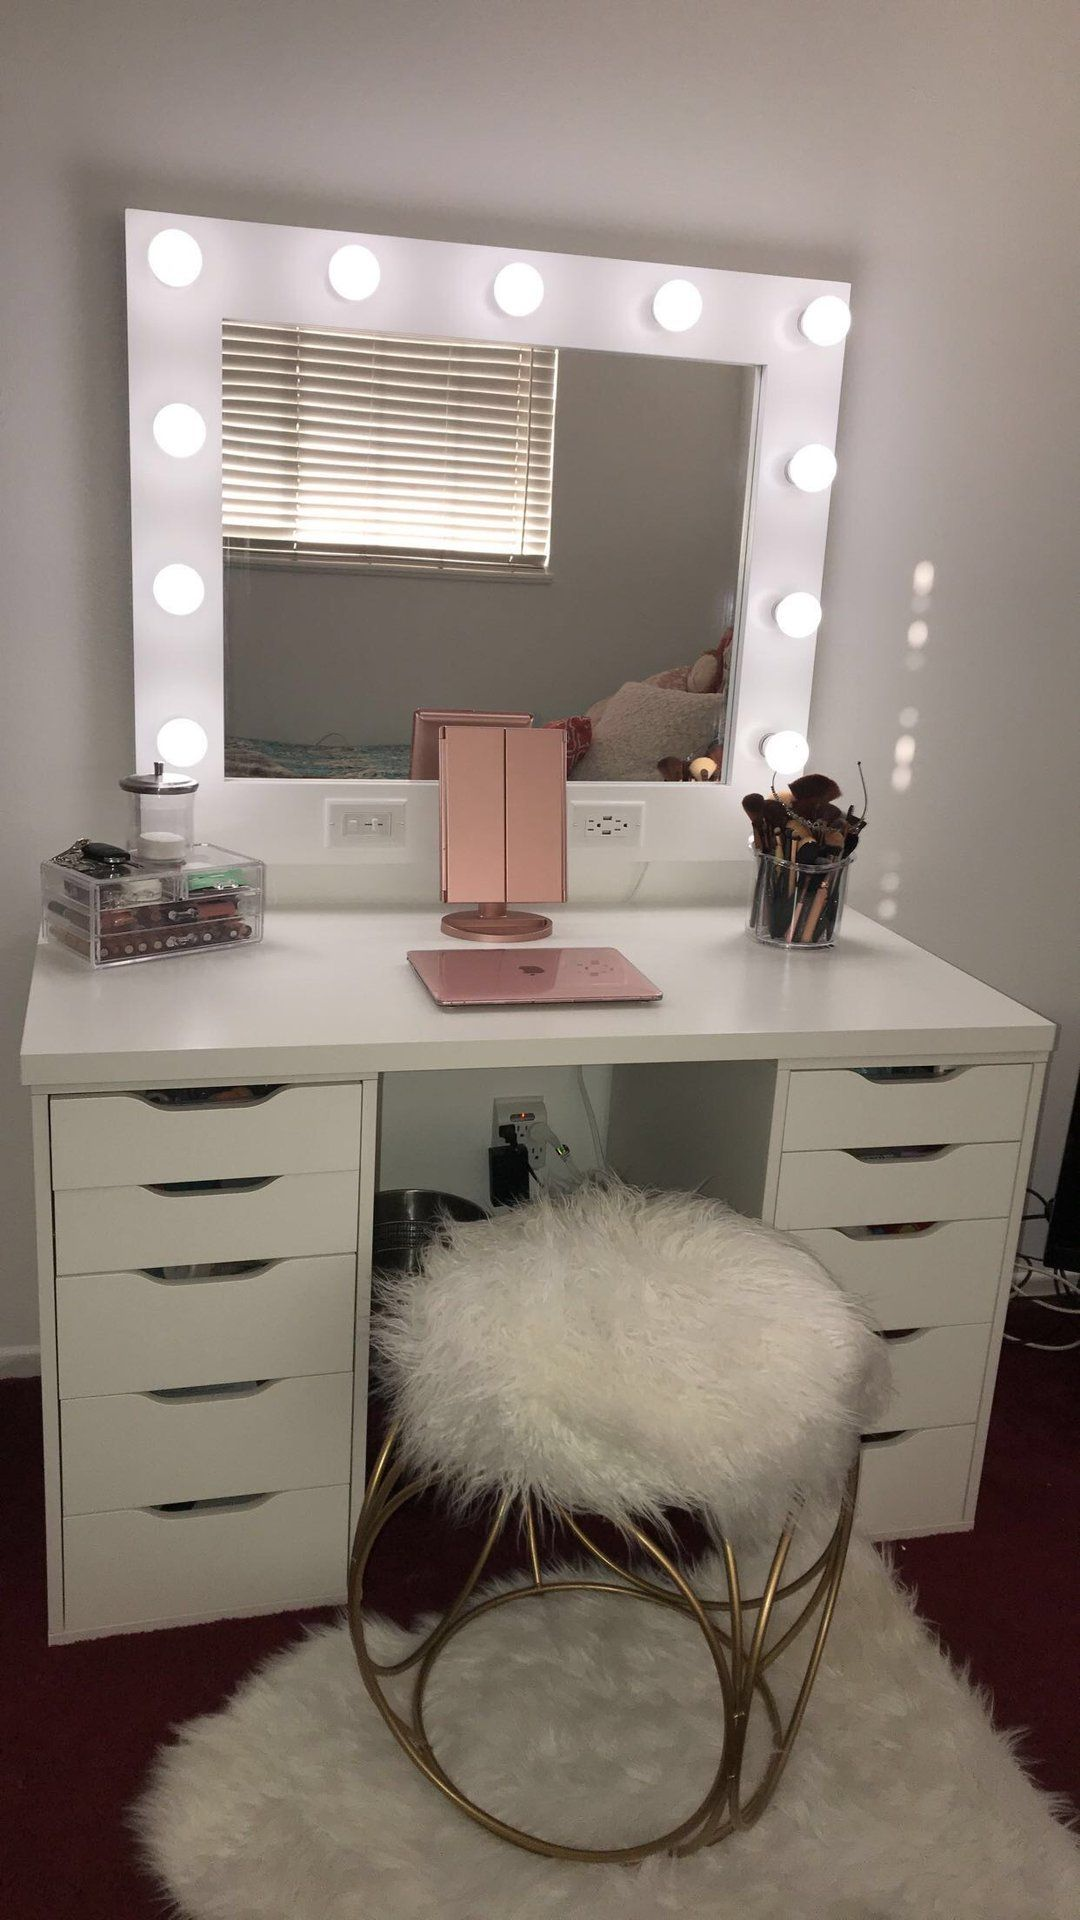 Small Dream Vanity Horizontal Makeup Room Decor Room Decor Stylish Bedroom